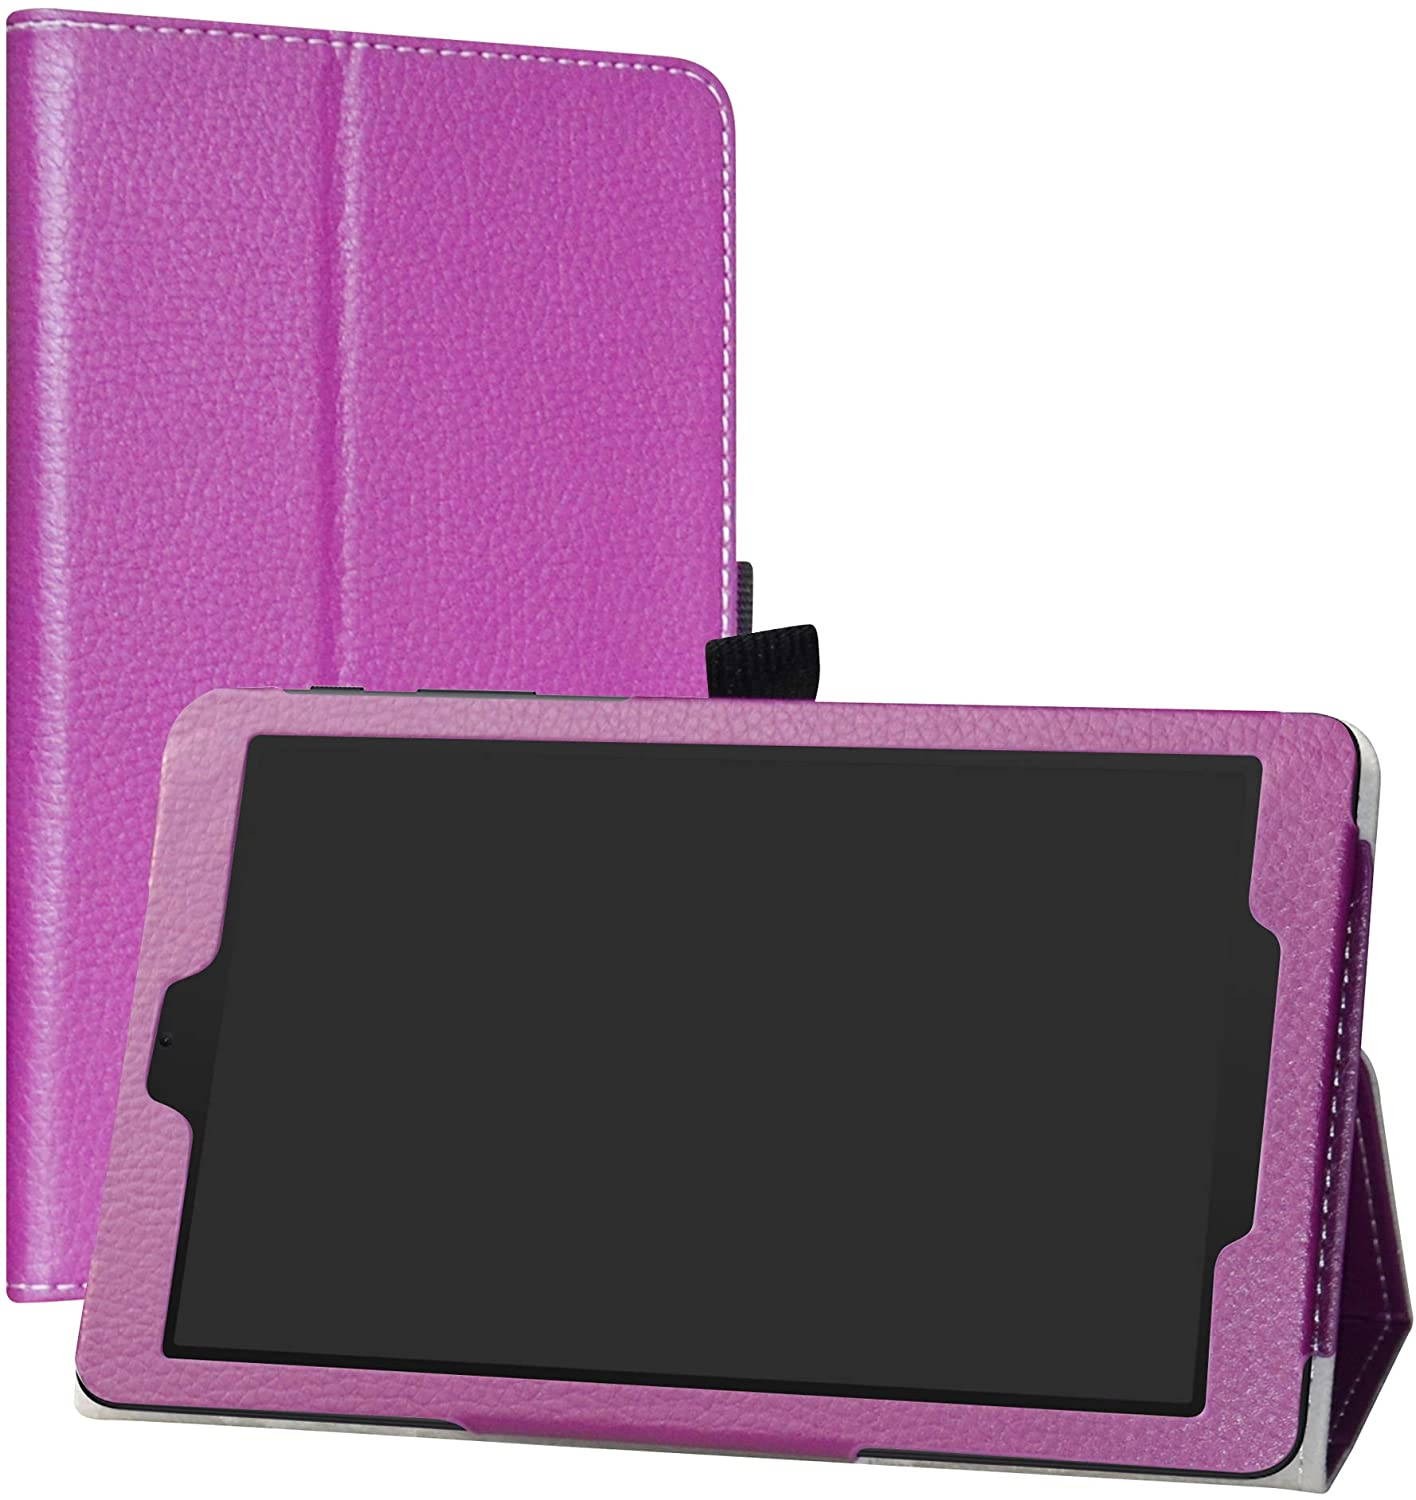 LiuShan Compatible with Alcatel Joy Tab Case, Alcatel 3T 8 Tablet Case,PU Leather Slim Folding Stand Cover for T-Mobile Alcatel Joy Tab 8-inch Tablet/Alcatel 3T 8-inch Tablet,Purple